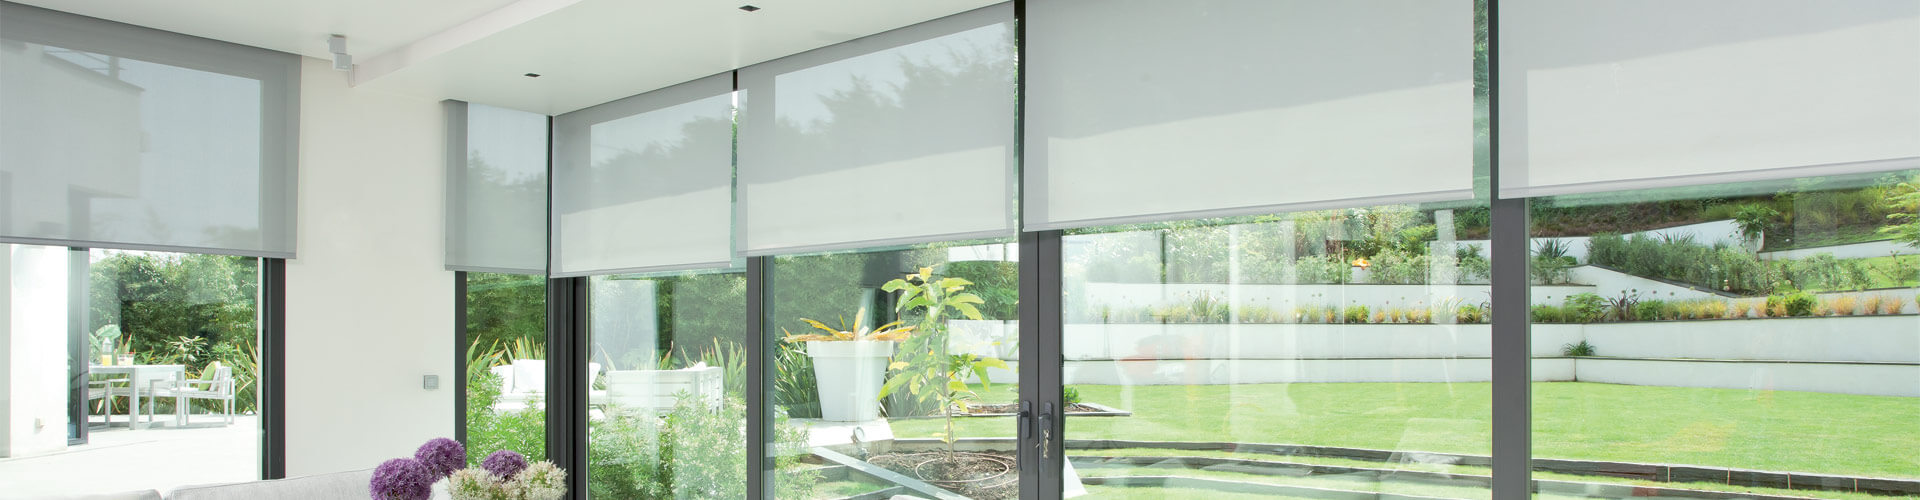 Commercial Electric Blinds